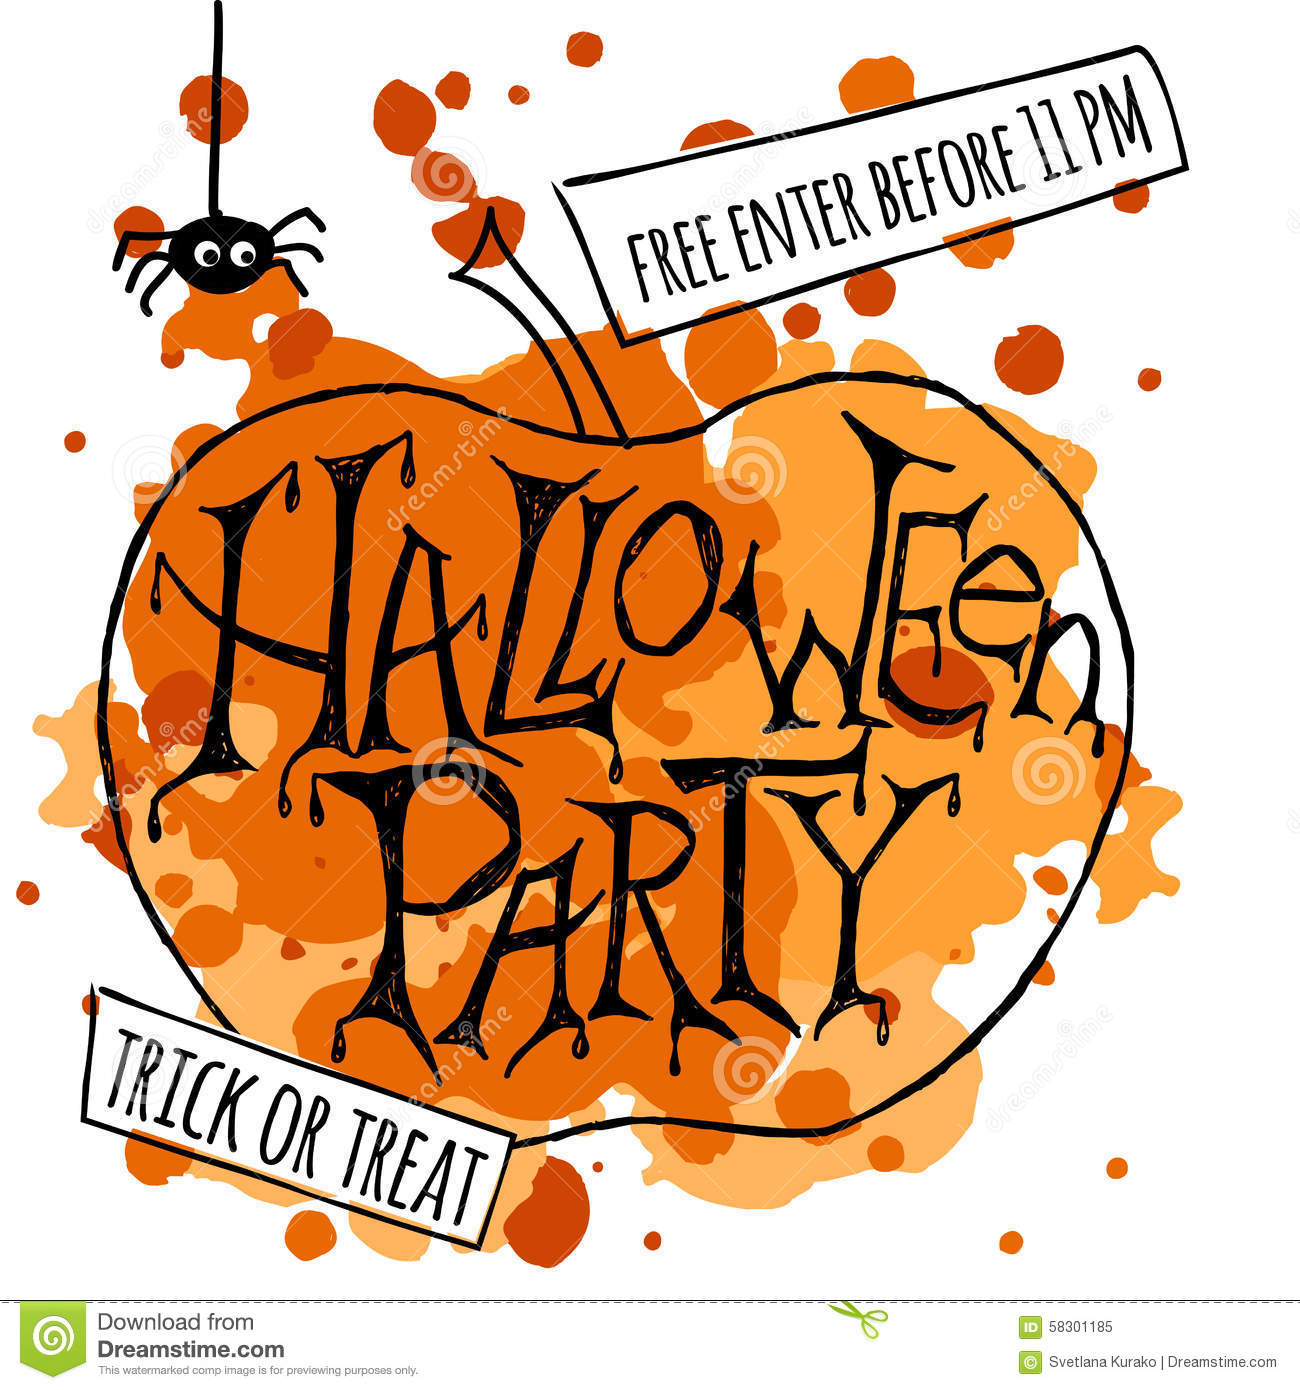 Happy Halloween Party Poster. Vector Illustration. Stock Vector ...